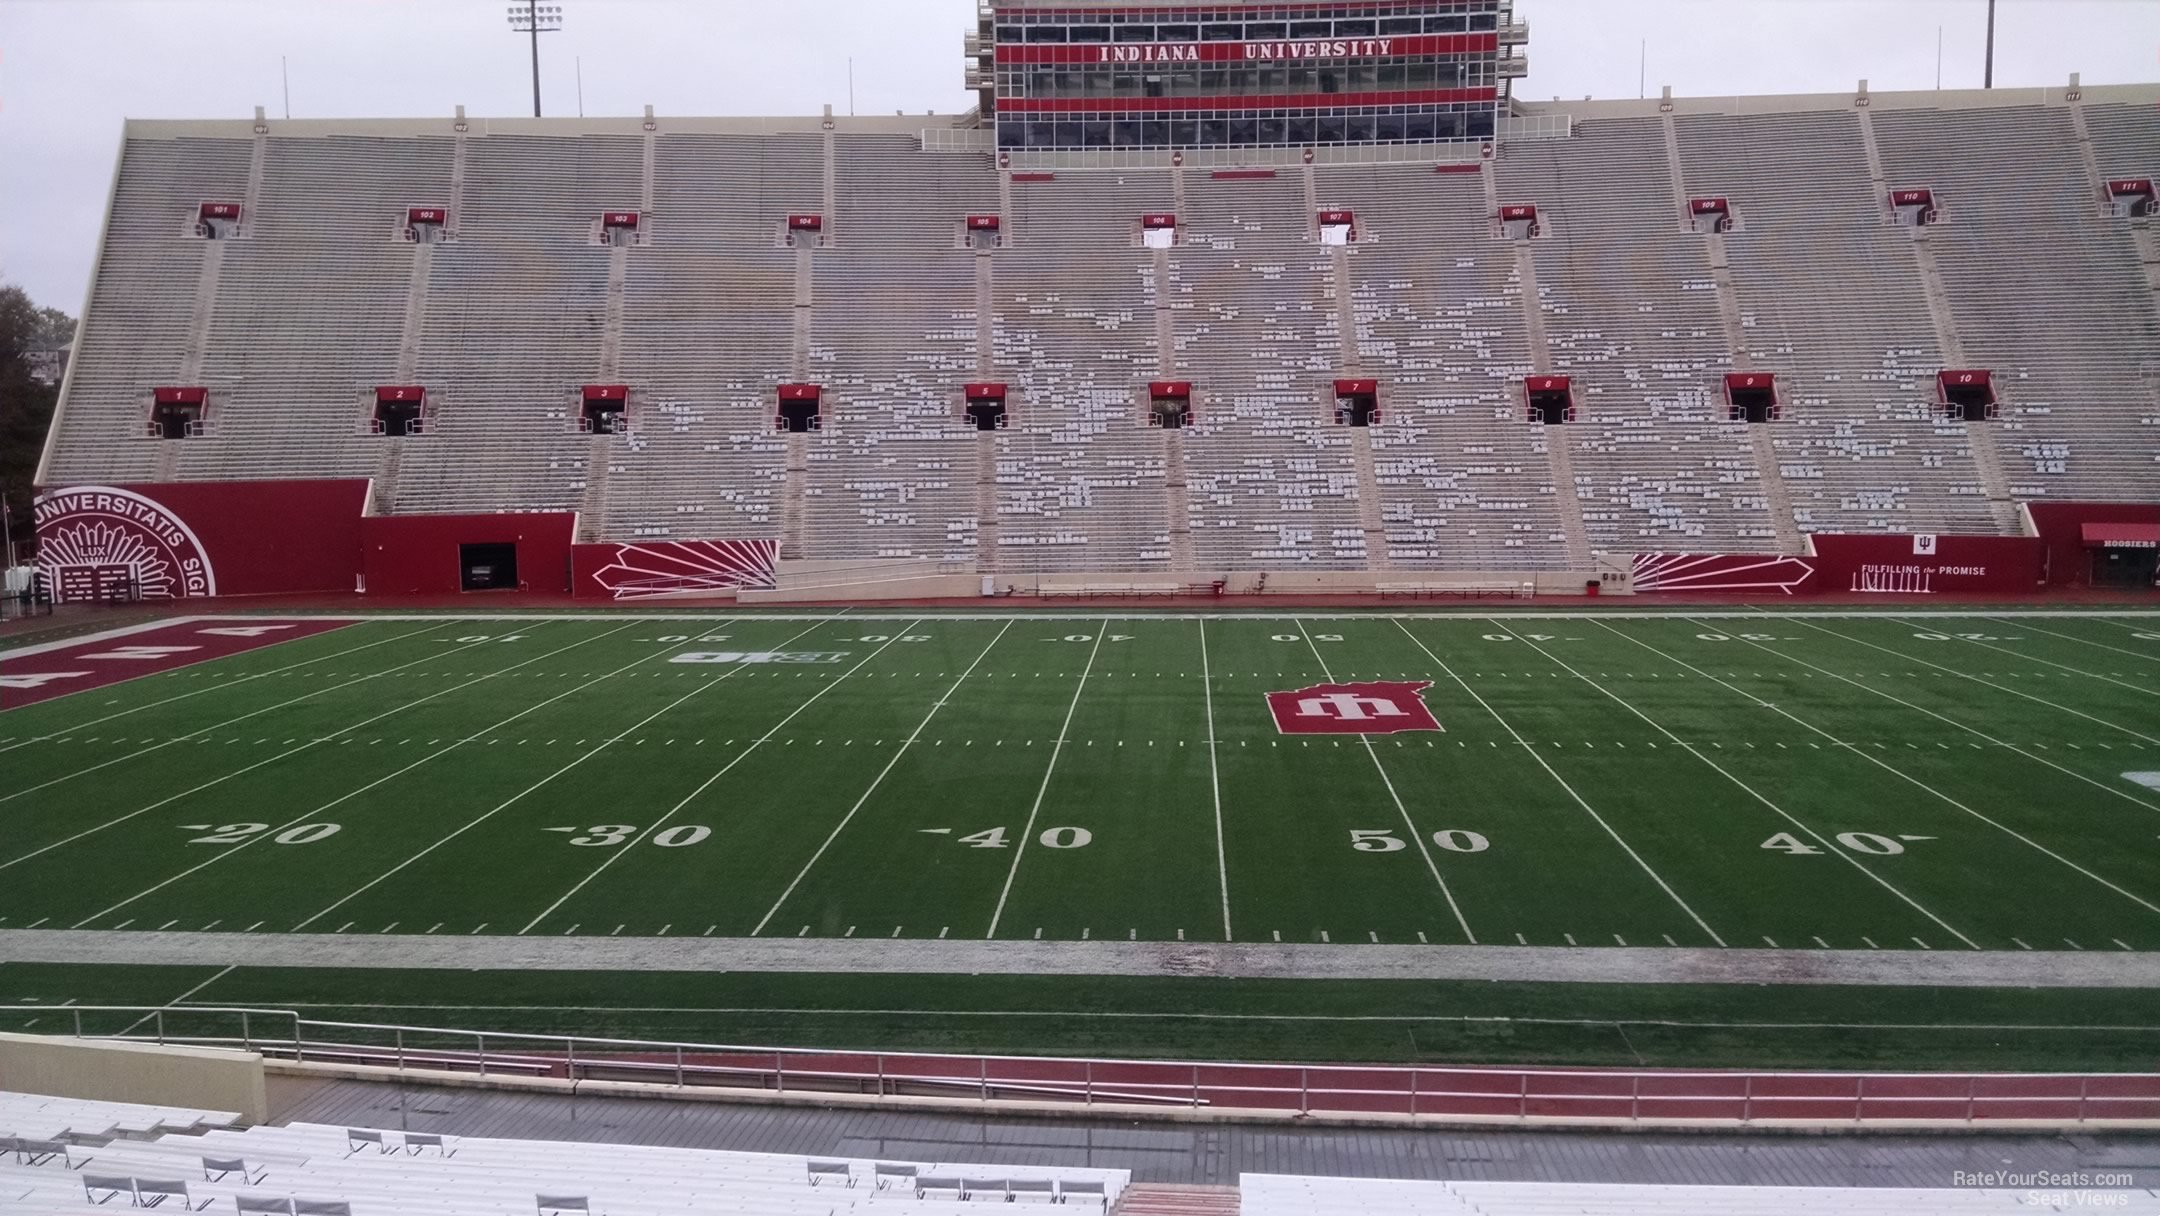 Seat View for Memorial Stadium - IN Section 27, Row 30